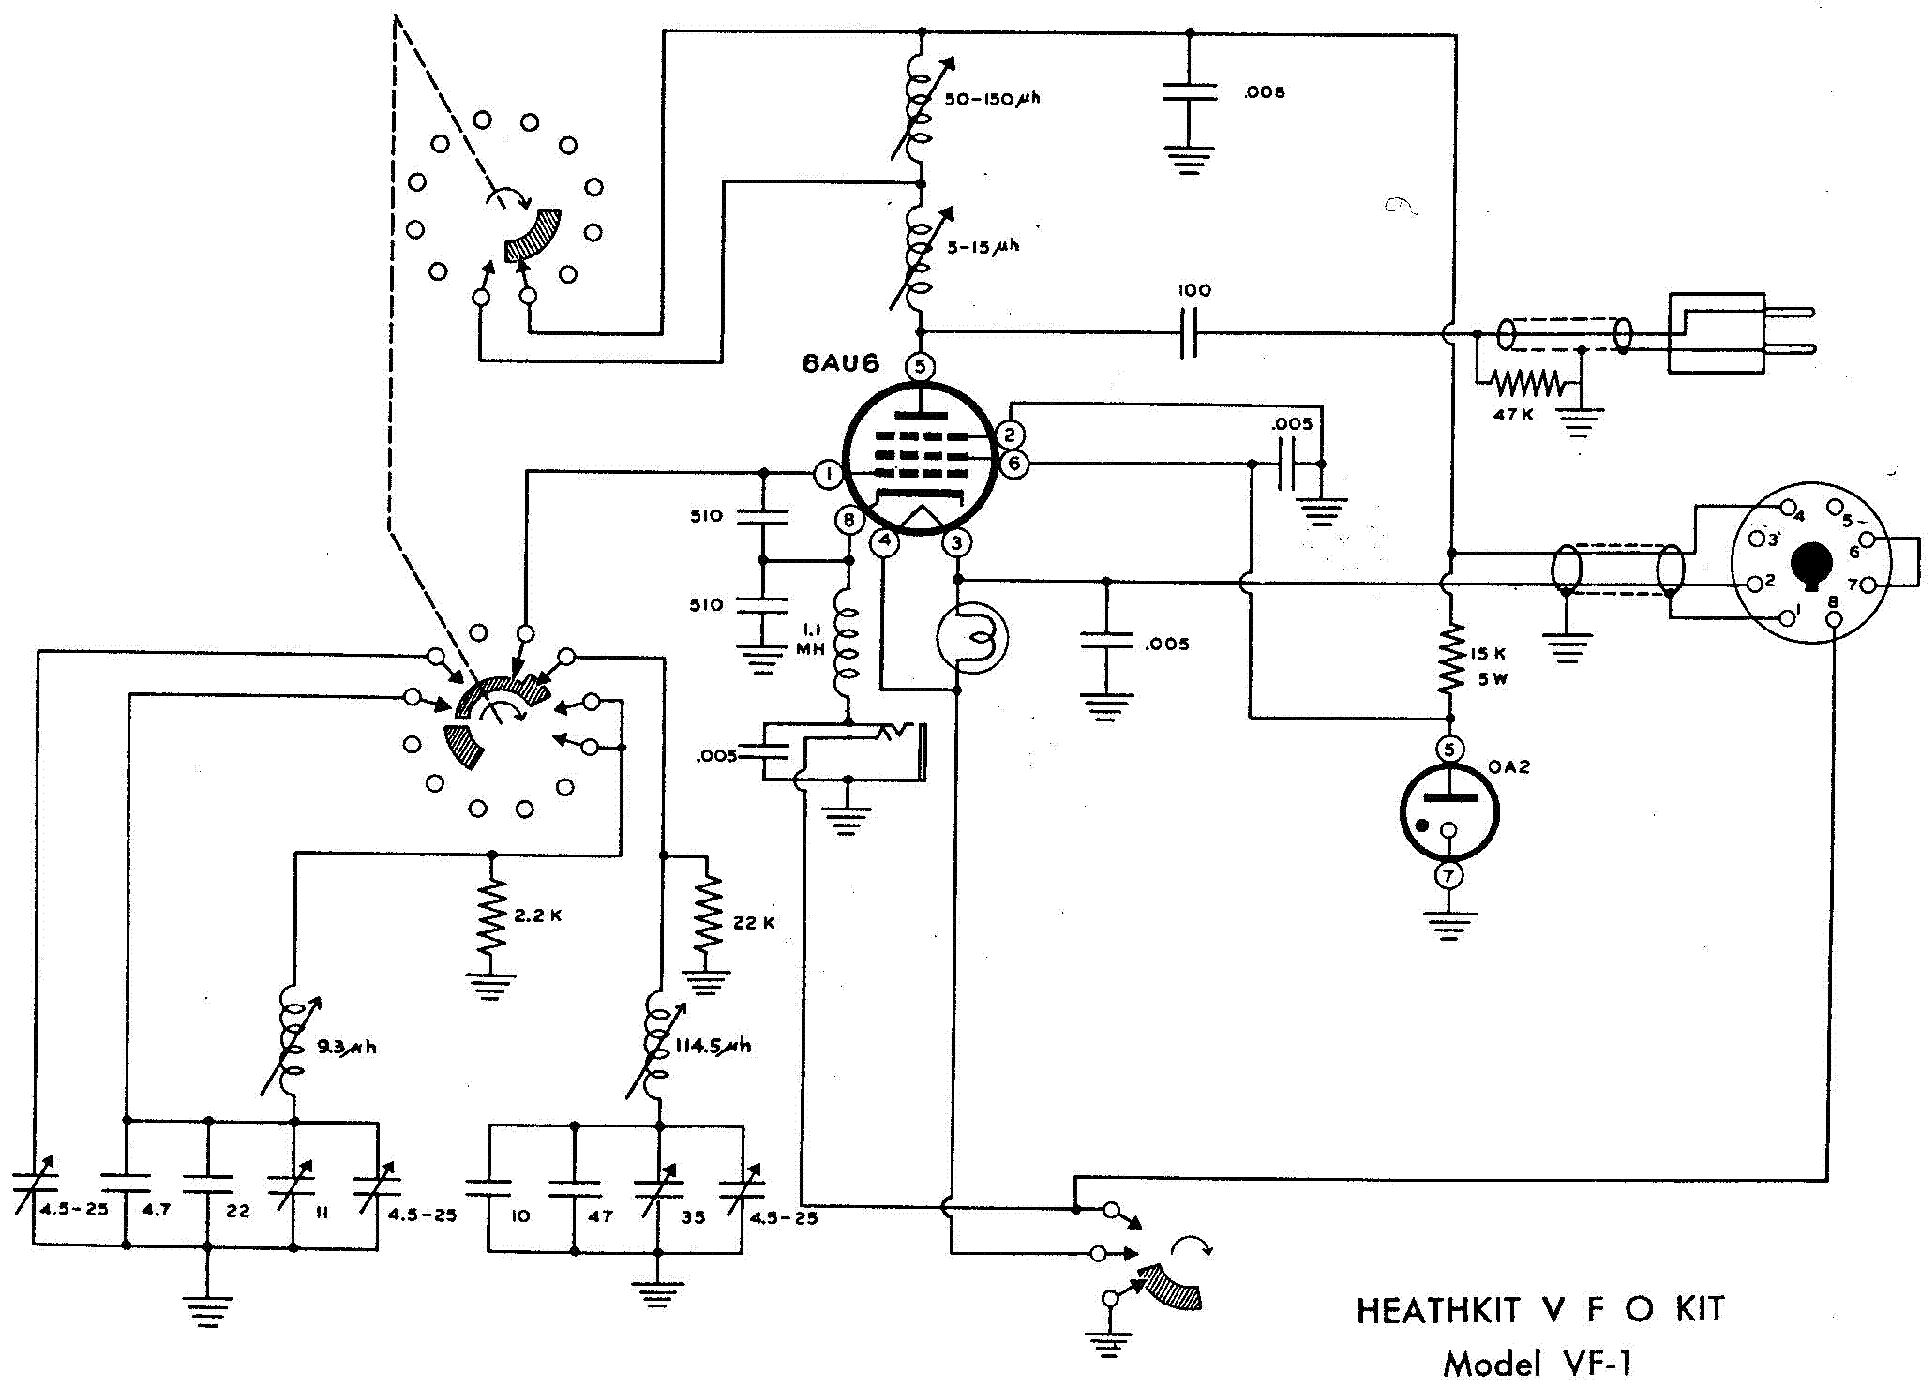 Heathkit Vf